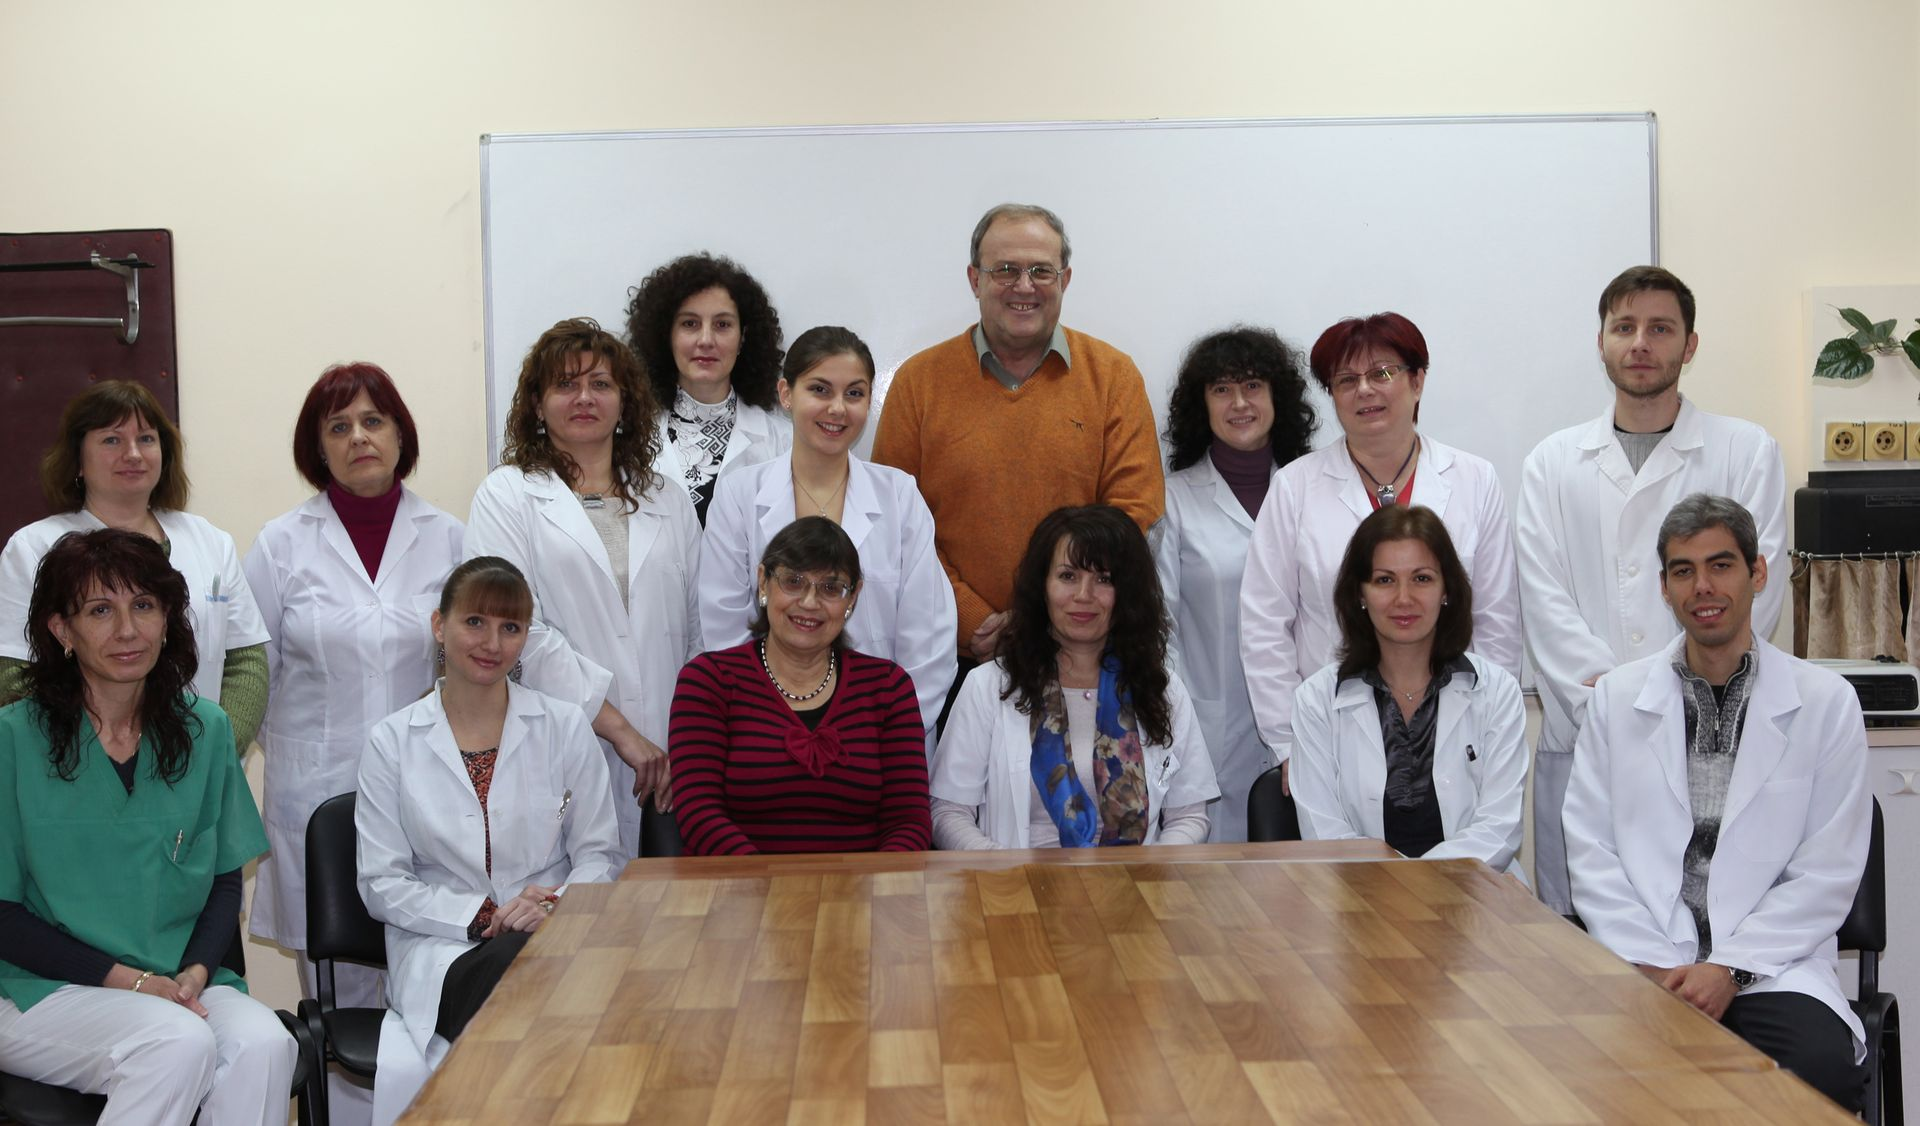 Academic staff Department of Chemistry and Biochemistry, Medical university of Plovdiv